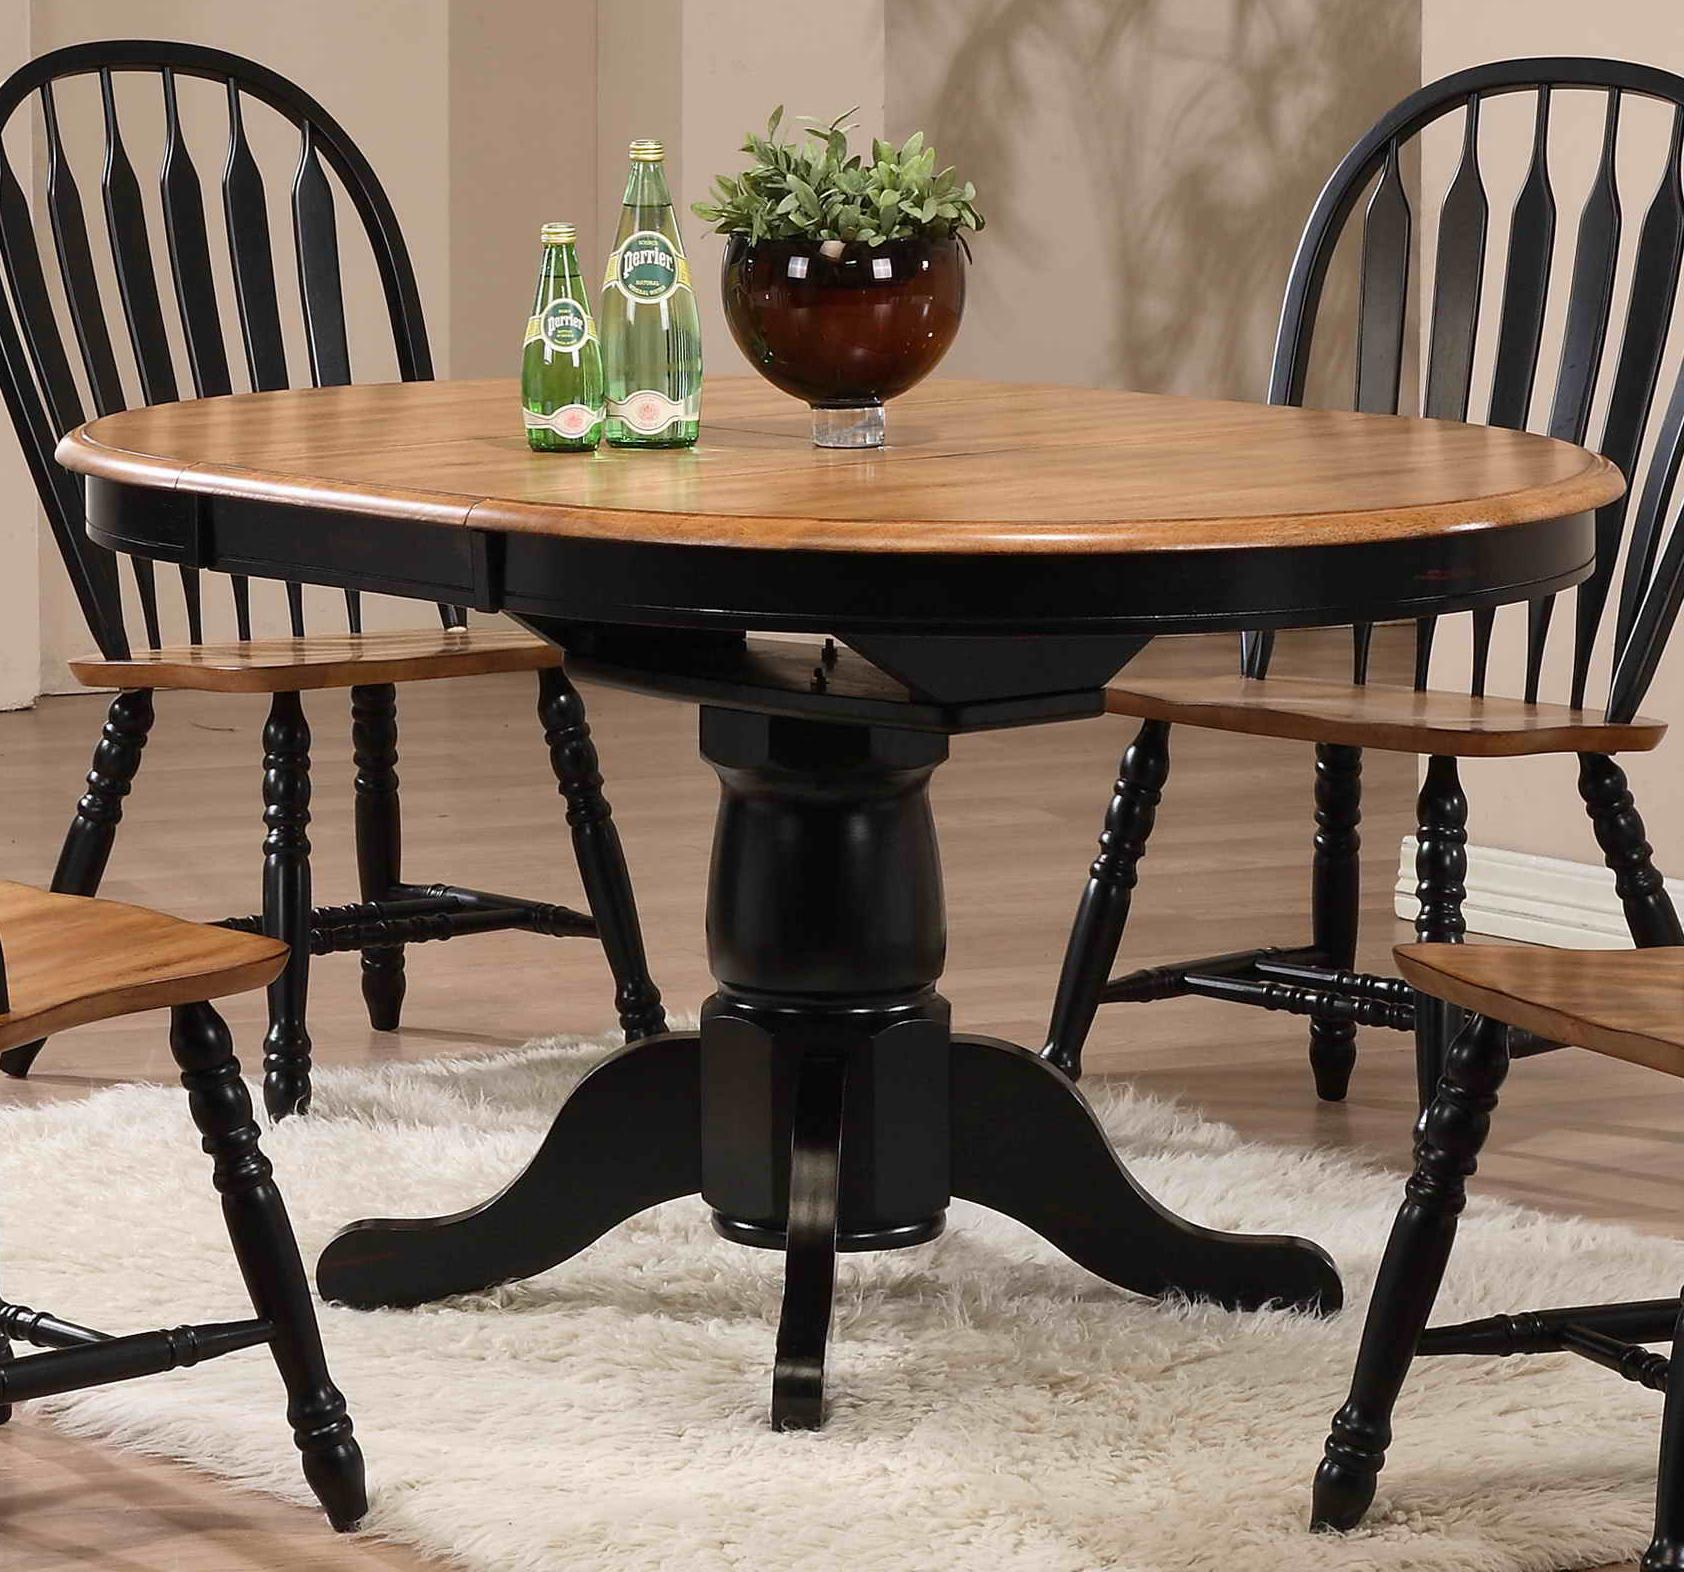 E.C.I. Furniture Dining  Round Dining Table - Item Number: 2150-10-B/T